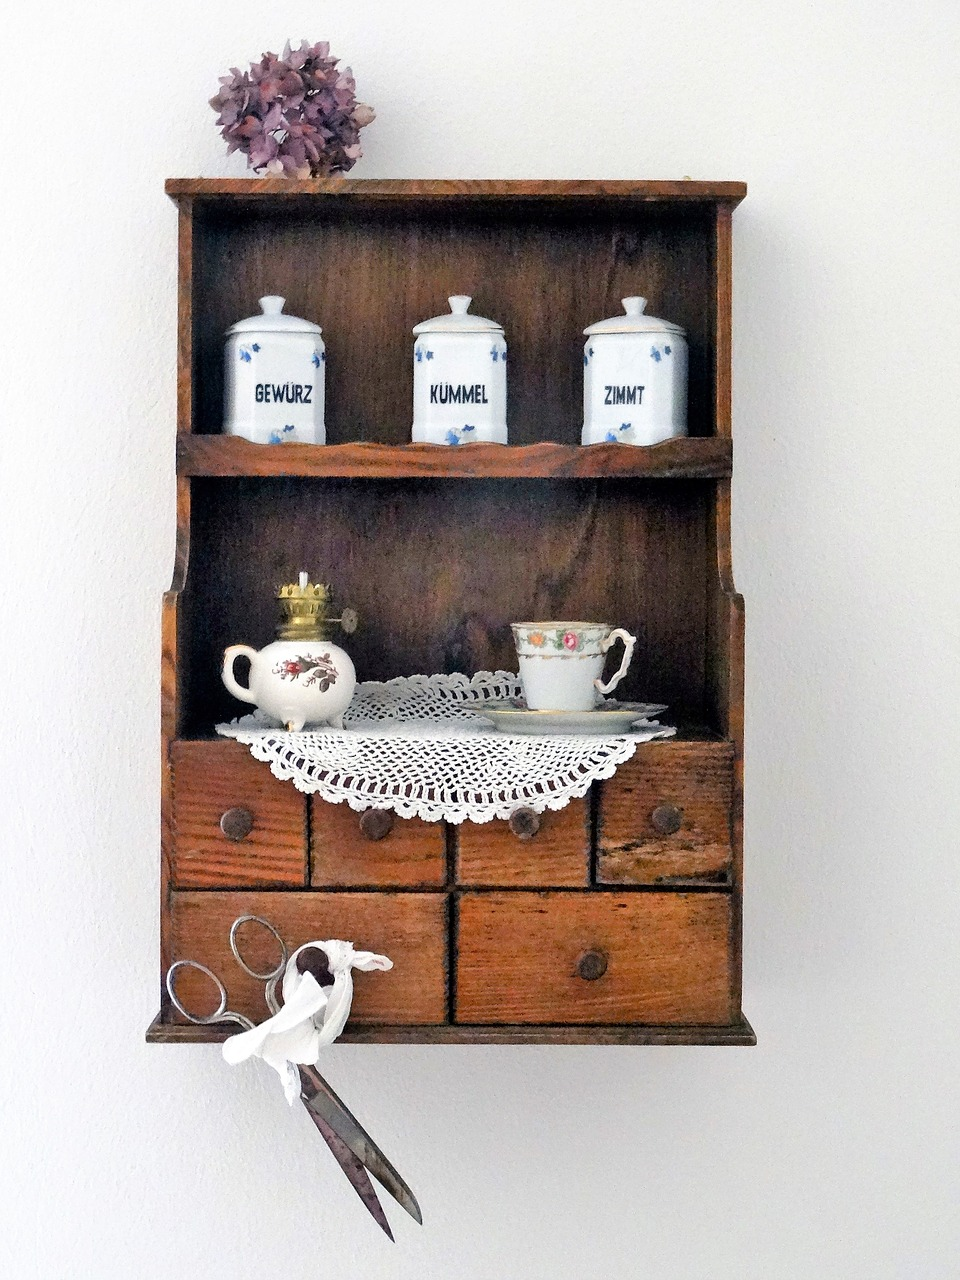 Vintage Spice Cabinet Antique - Vintage,spice Cabinet,antique,farmhouse,kitchen - Free Photo From